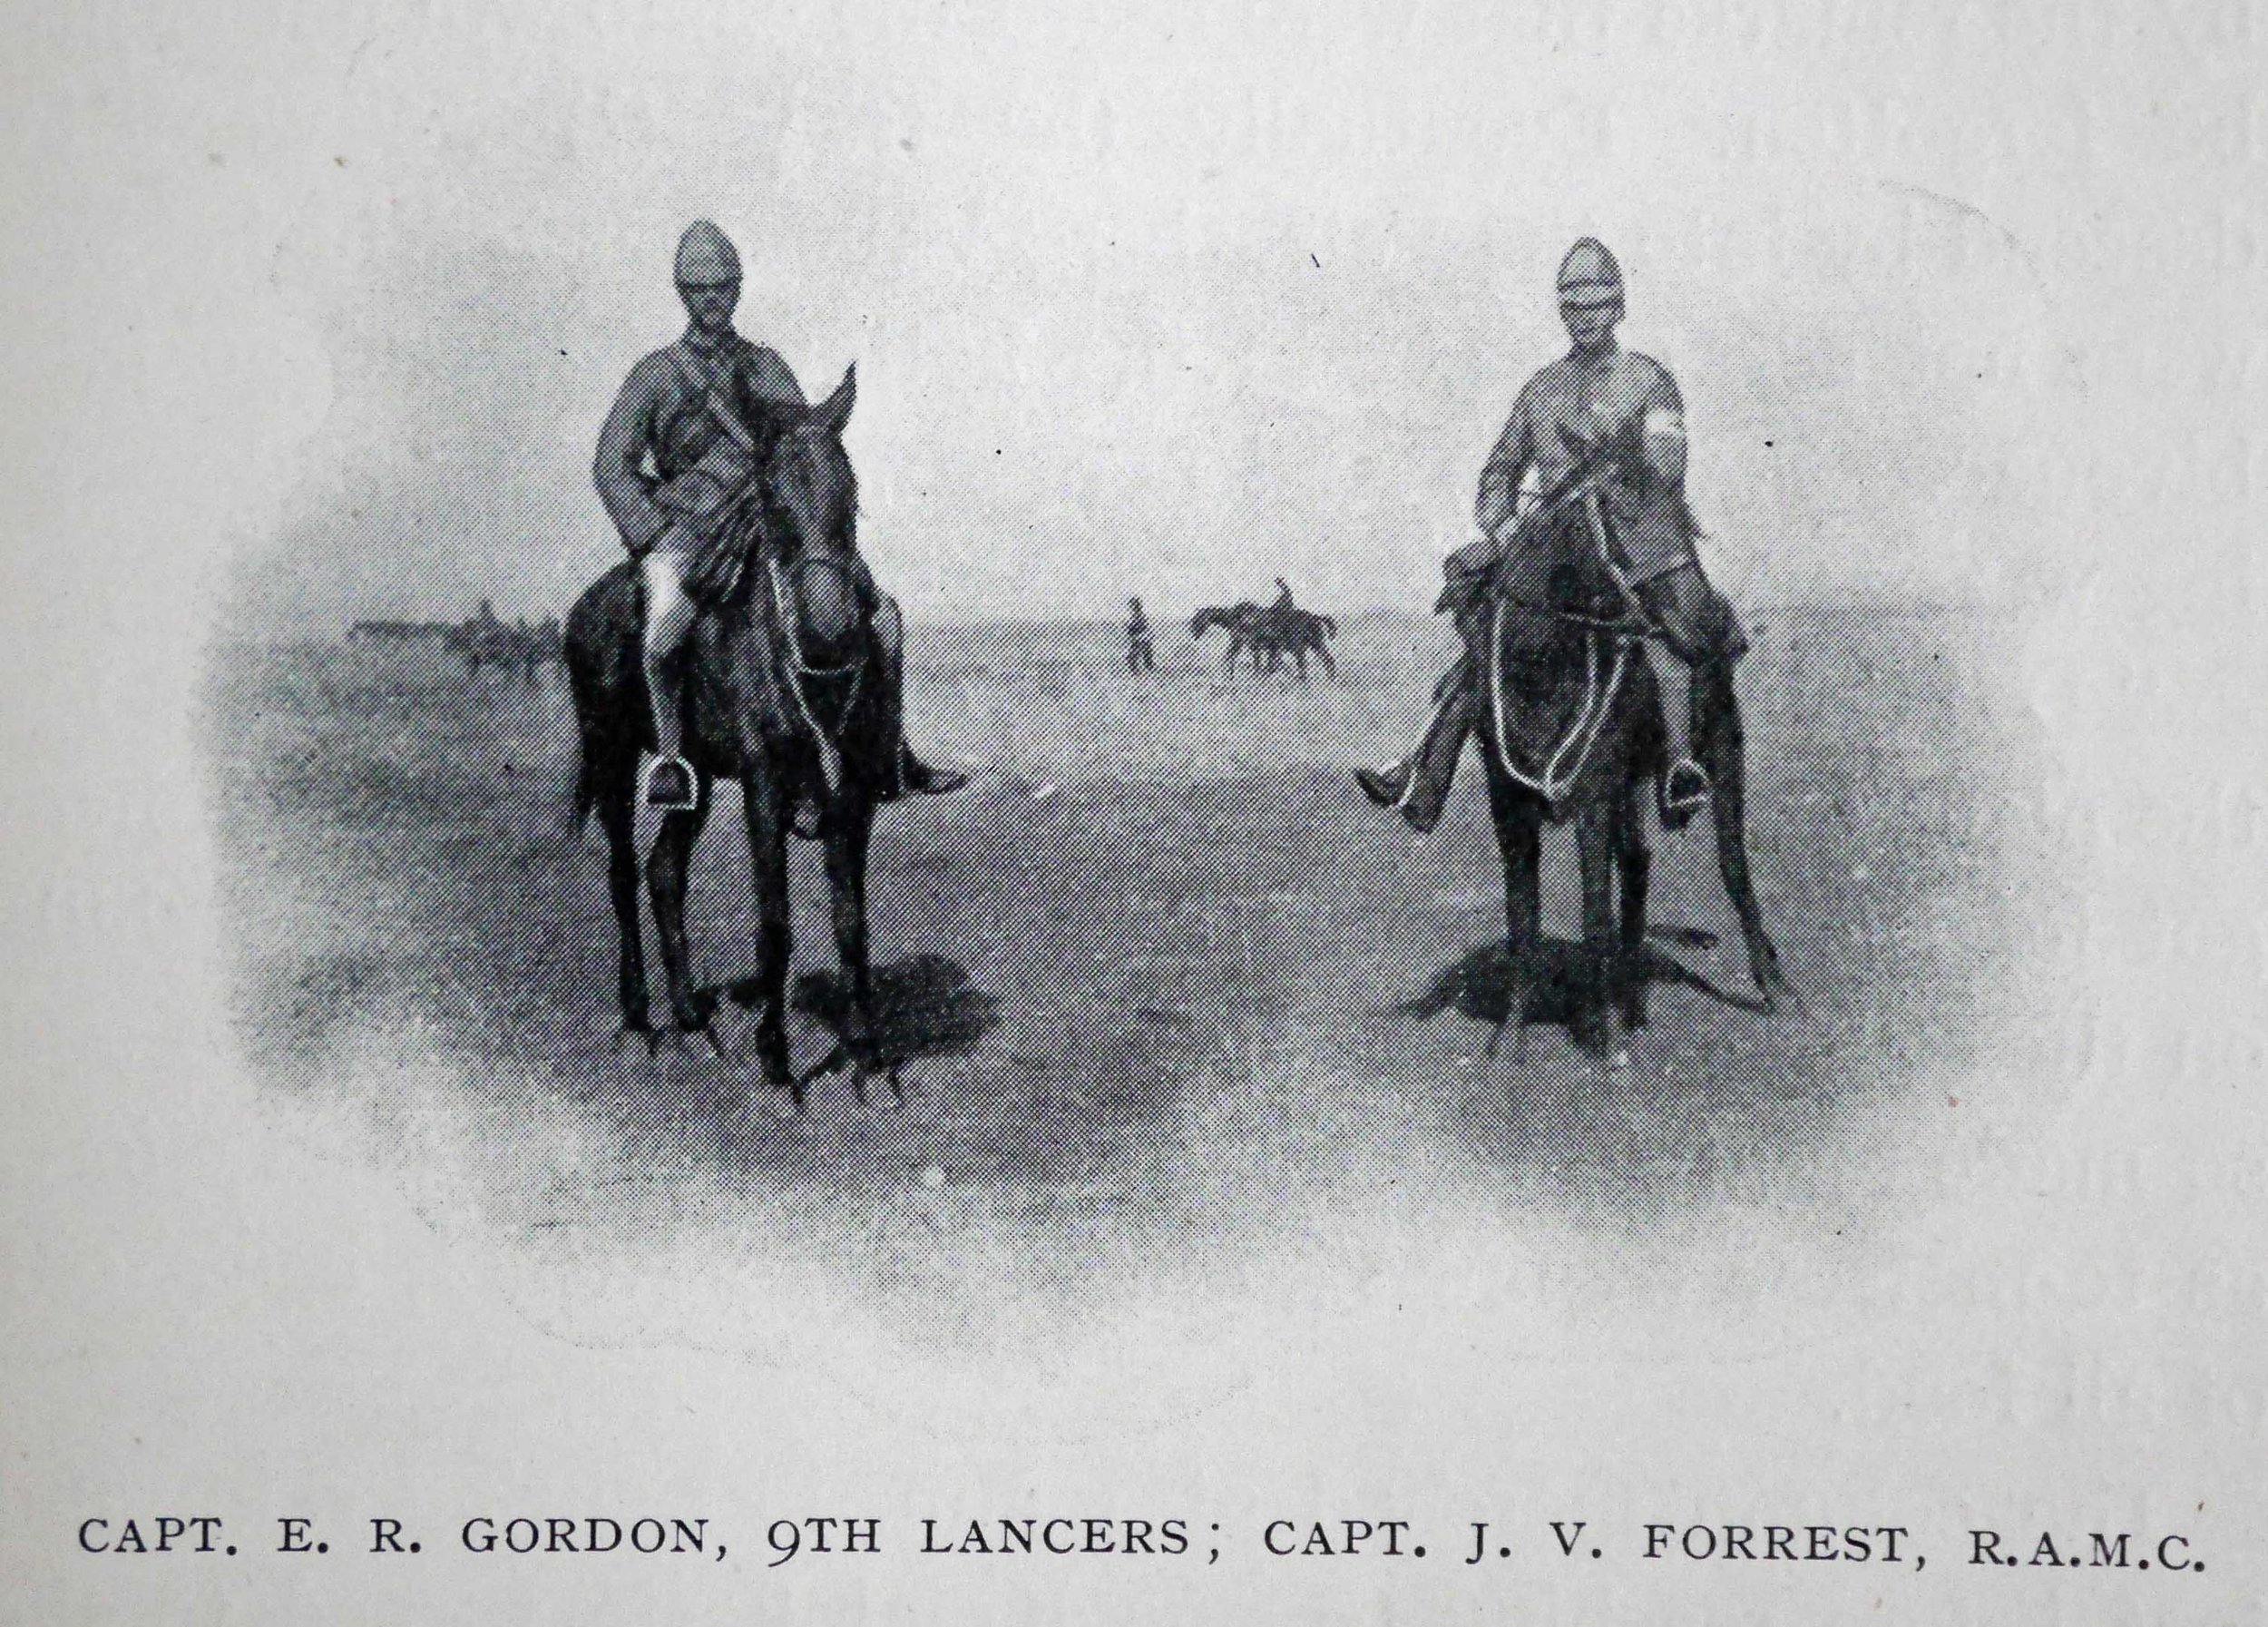 Captain Edward Robertson Gordon and Captain J.V. Forrest (later Colonel, C.B., C.M.G.), the regiment's medical officer, during the Boer War, probably in 1901 (Colvin, Lieutenant Colonel F.F. and Gordon, Captain E.R., 1904,  Diary of the Ninth Lancers in South Africa 1899-1902 . London, Cecil Roy, p. 239).